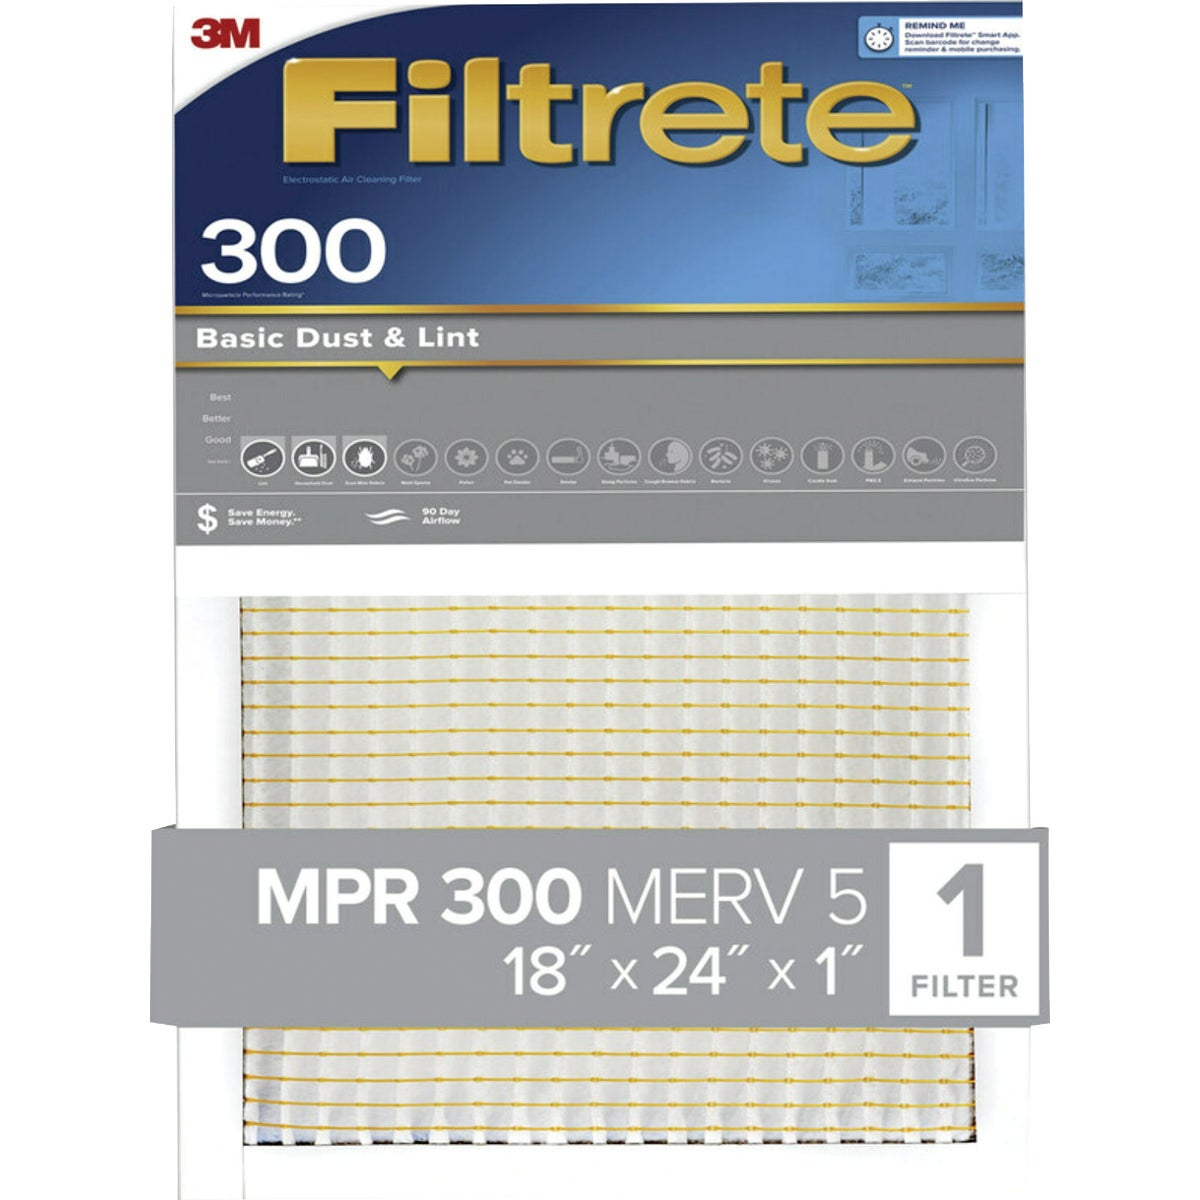 3M Filtrete 20 In. x 25 In. x 1 In. Dust Reduction 300 MPR Furnace Filter